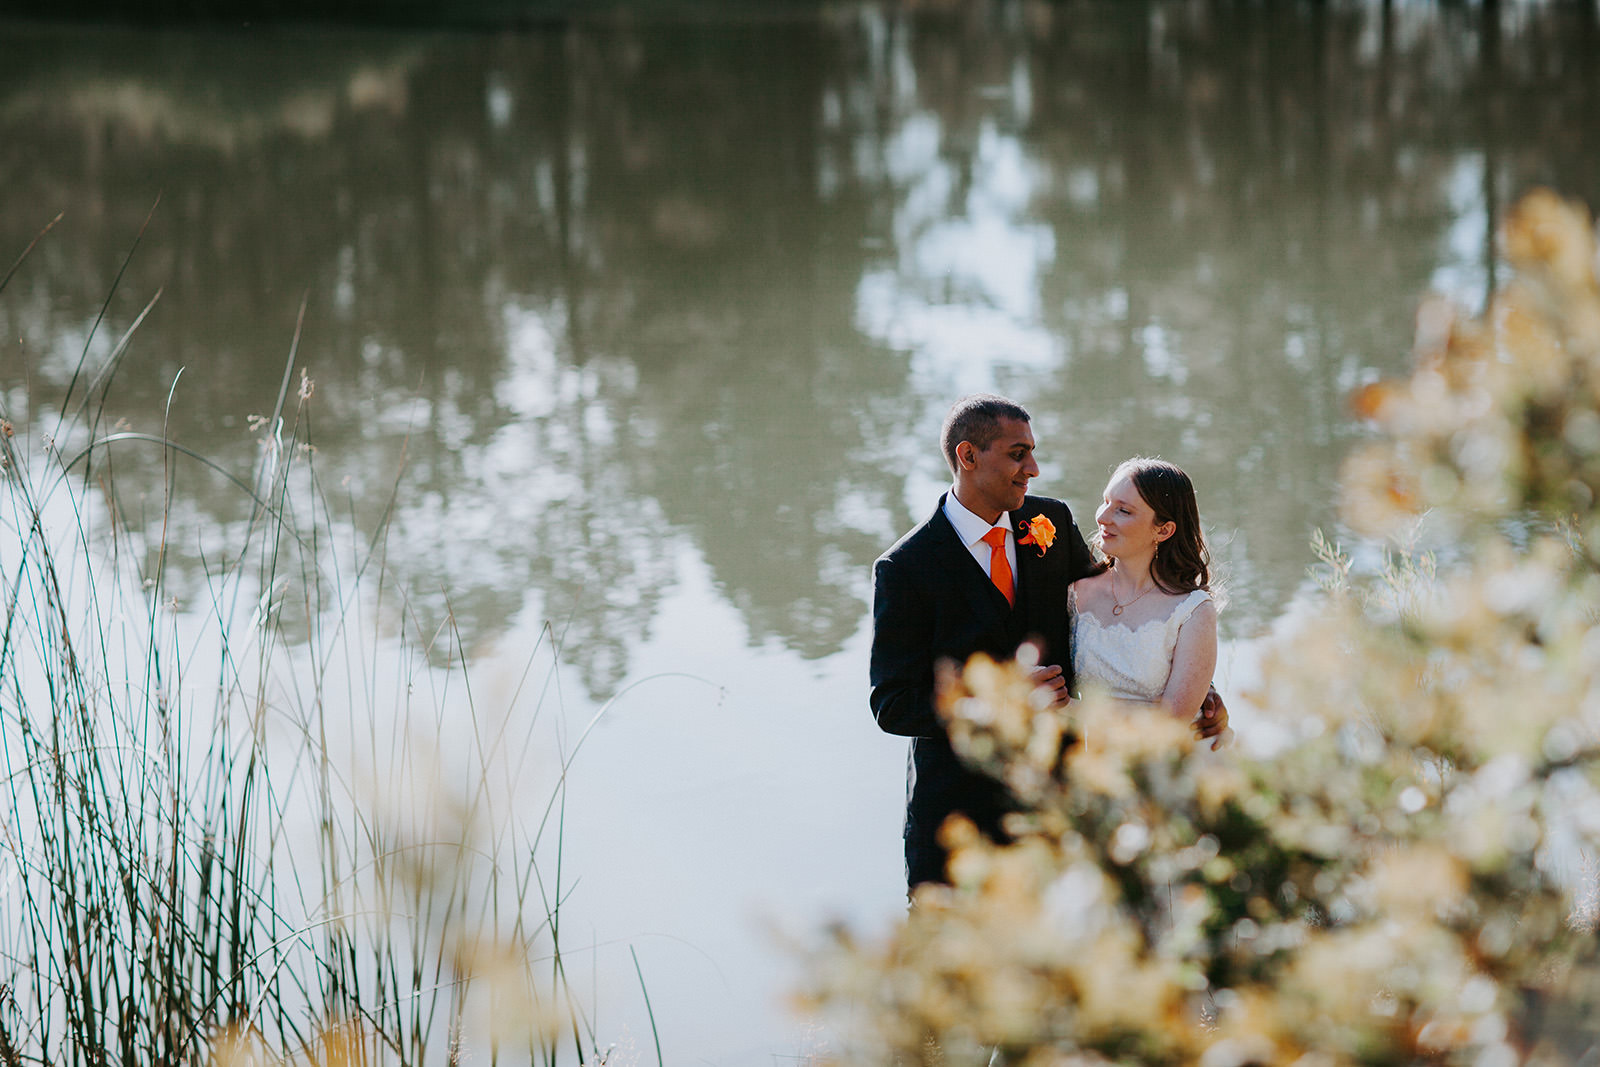 Newlyweds embracing side by side with pine trees reflected in lake behind